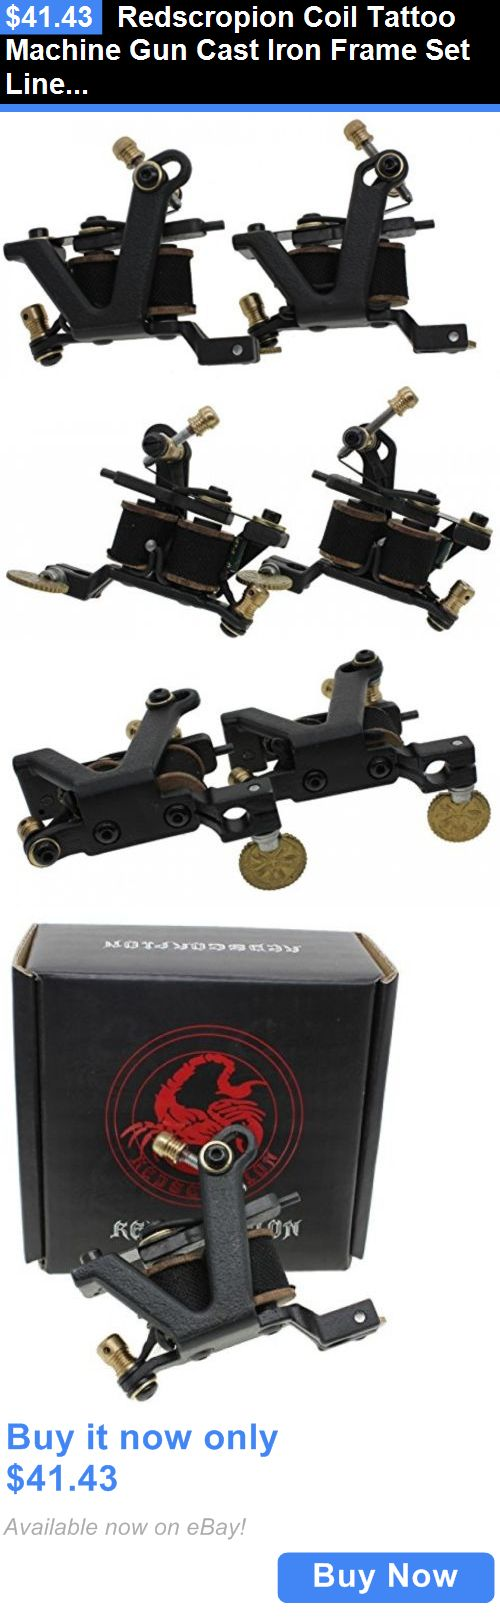 Tattoo Machines and Parts: Redscropion Coil Tattoo Machine Gun Cast Iron Frame Set Liner Shader For Tattoo BUY IT NOW ONLY: $41.43